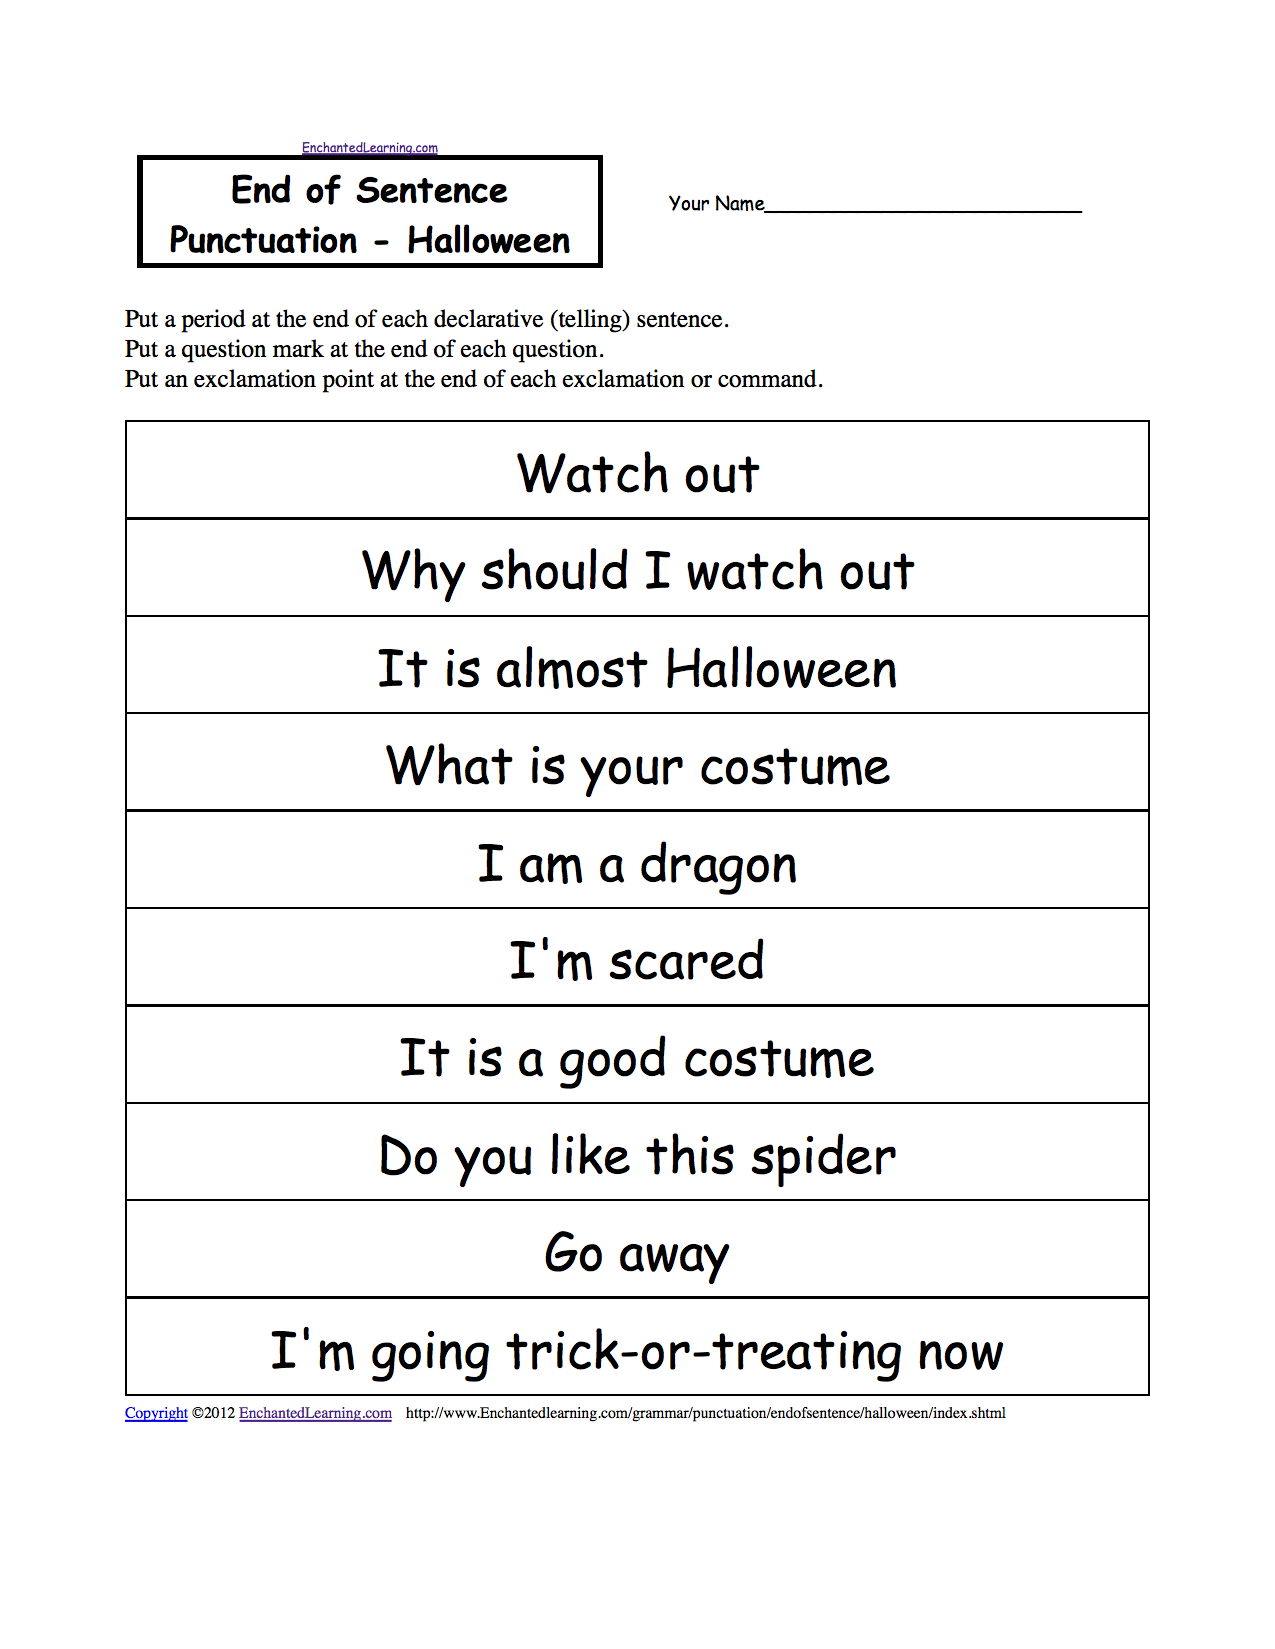 Free Worksheet Ending Punctuation Worksheets end of sentence punctuation printable worksheets halloween